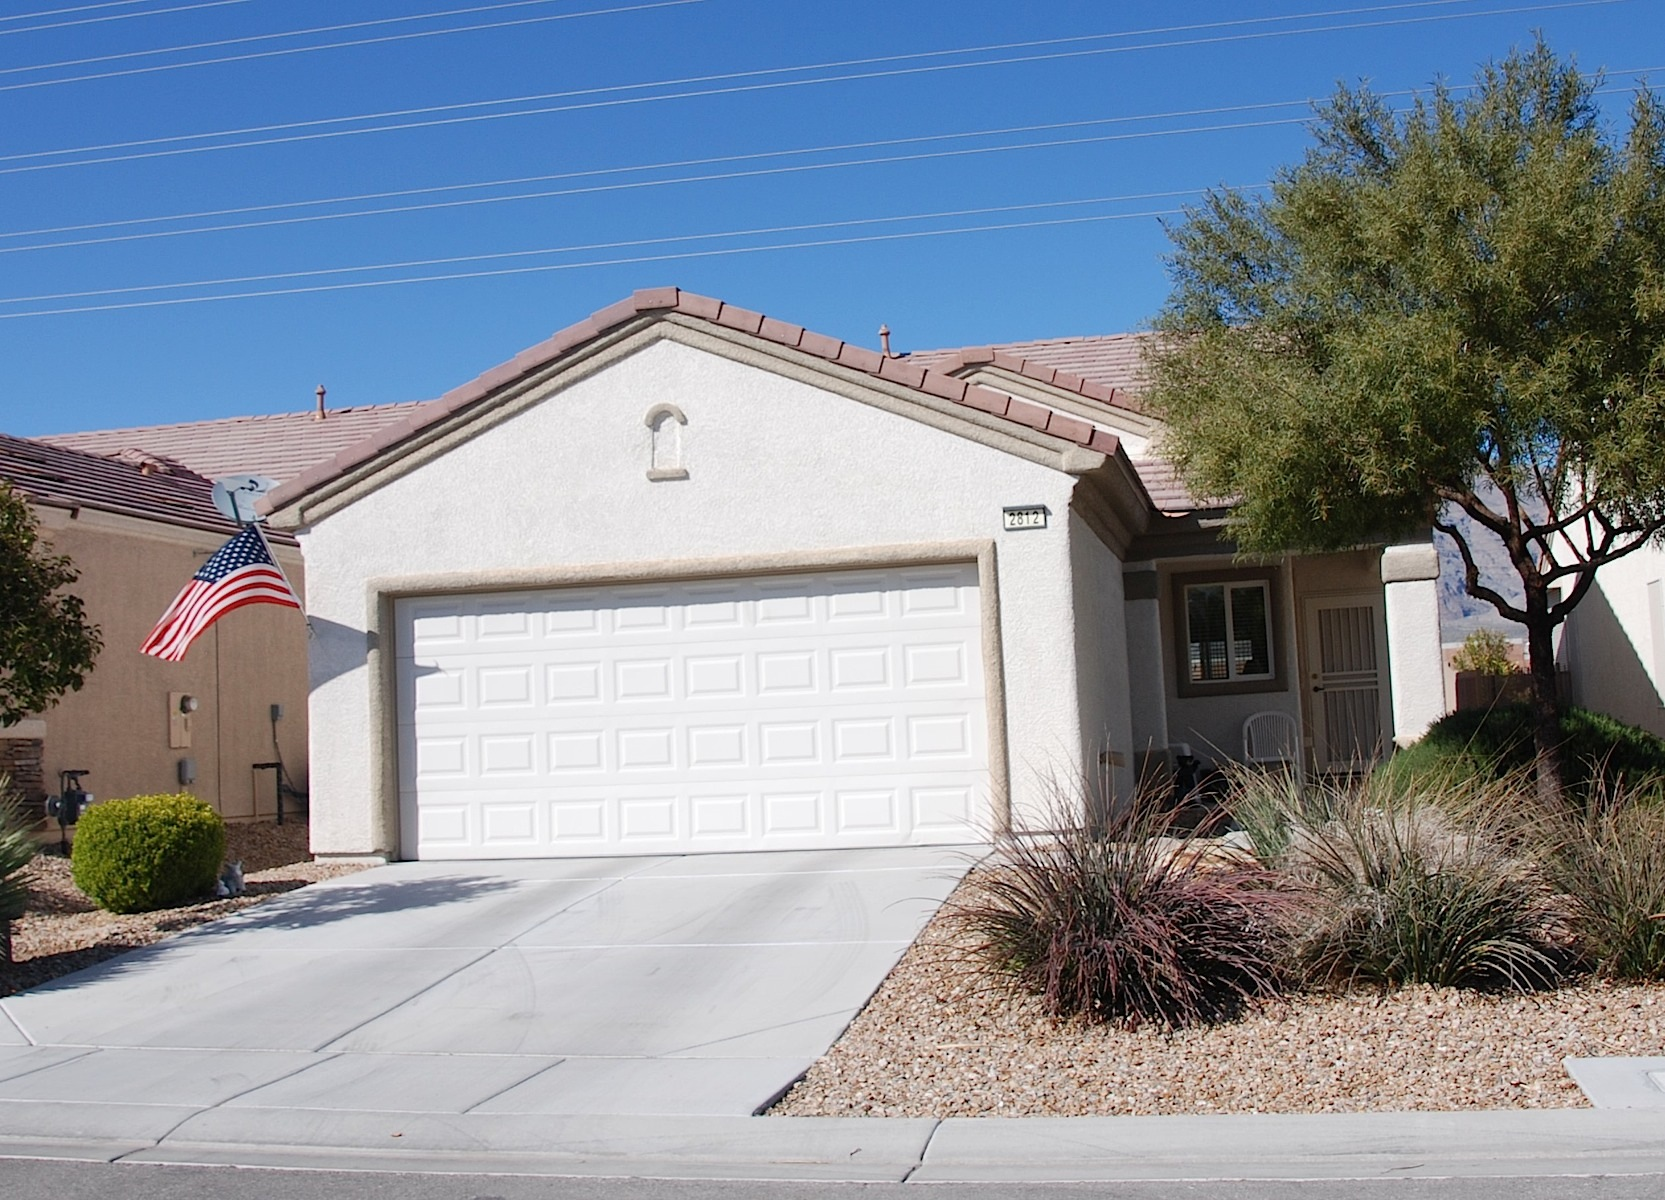 Single Family Home for Sale at 2812 Ground Robin Dr 2812 Ground Roin Dr North Las Vegas, Nevada 89084 United States